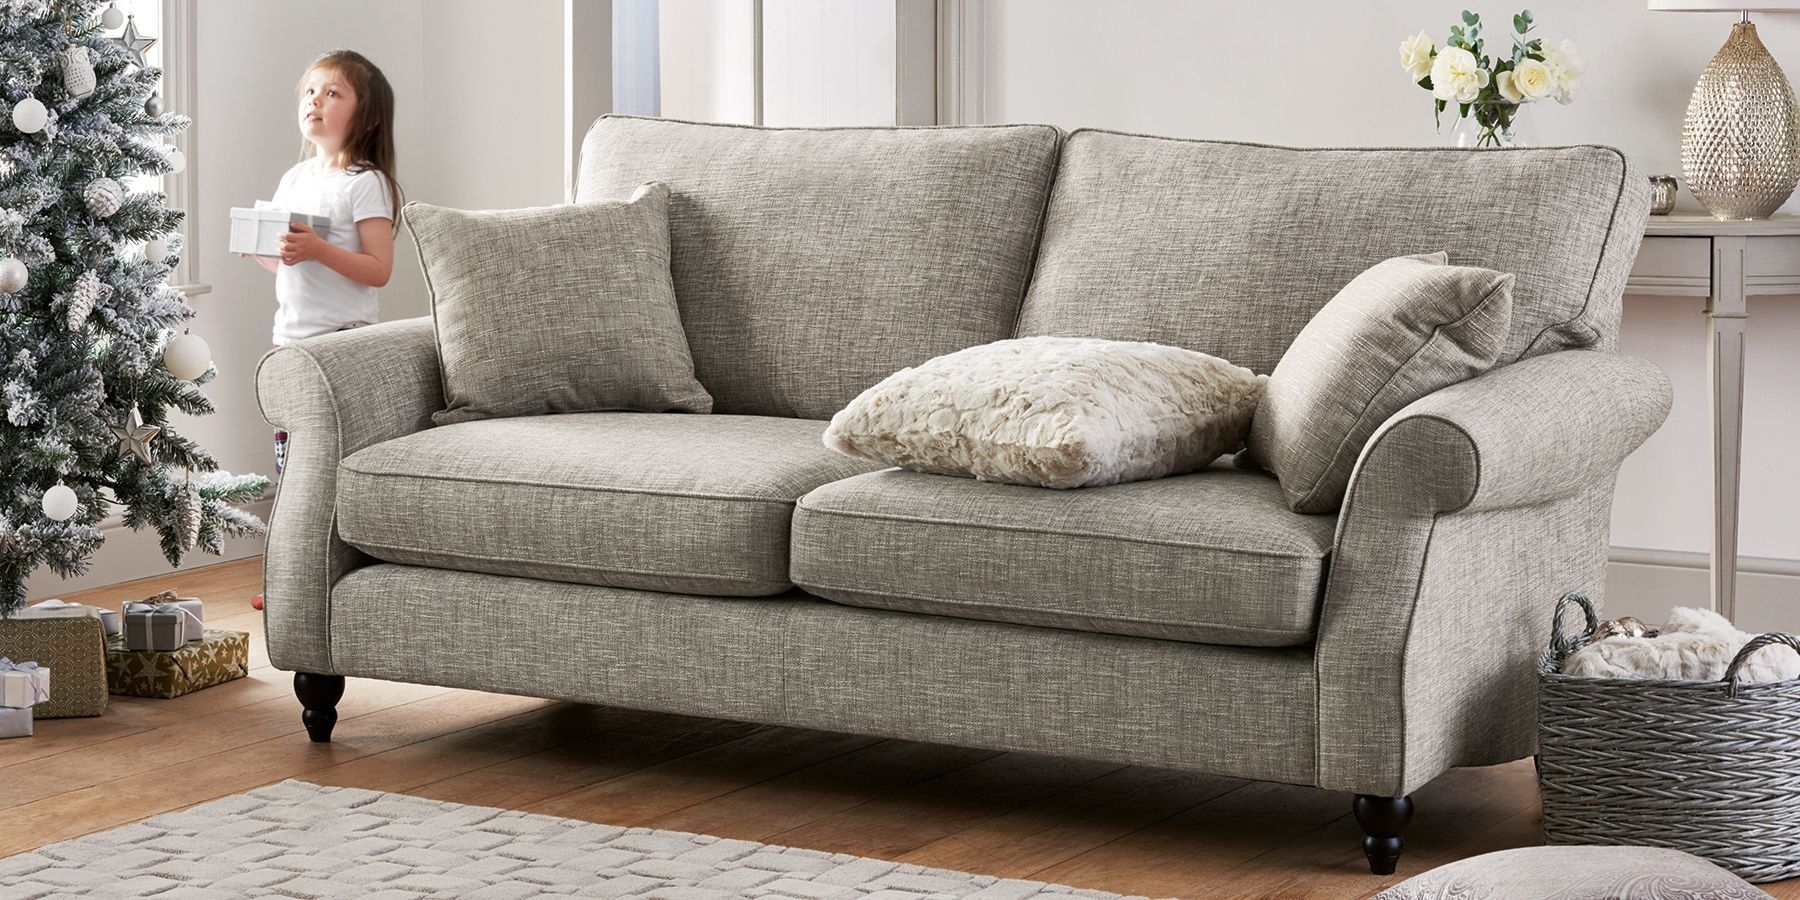 Buy Ashford Corner Chaise - Right Hand (4 Seats) Tweedy Blend Light with Declan 3 Piece Power Reclining Sectionals With Left Facing Console Loveseat (Image 7 of 30)